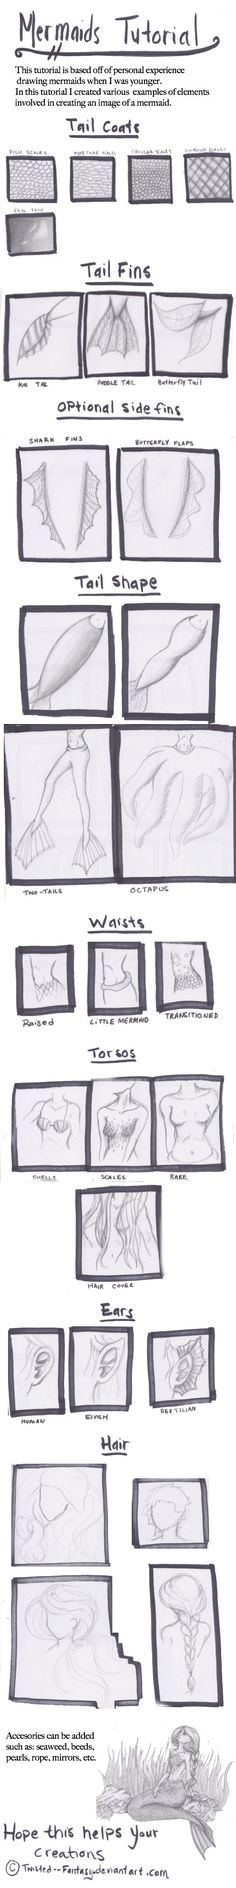 anime drawing tutorial Art Ed Central loves this Mermaid Tutorial by Twisted--Fantasy on deviantART - Drawing Techniques, Drawing Tips, Drawing Reference, Drawing Ideas, Design Reference, Drawing Sketches, Mermaid Drawings, Mermaid Art, Tattoo Mermaid